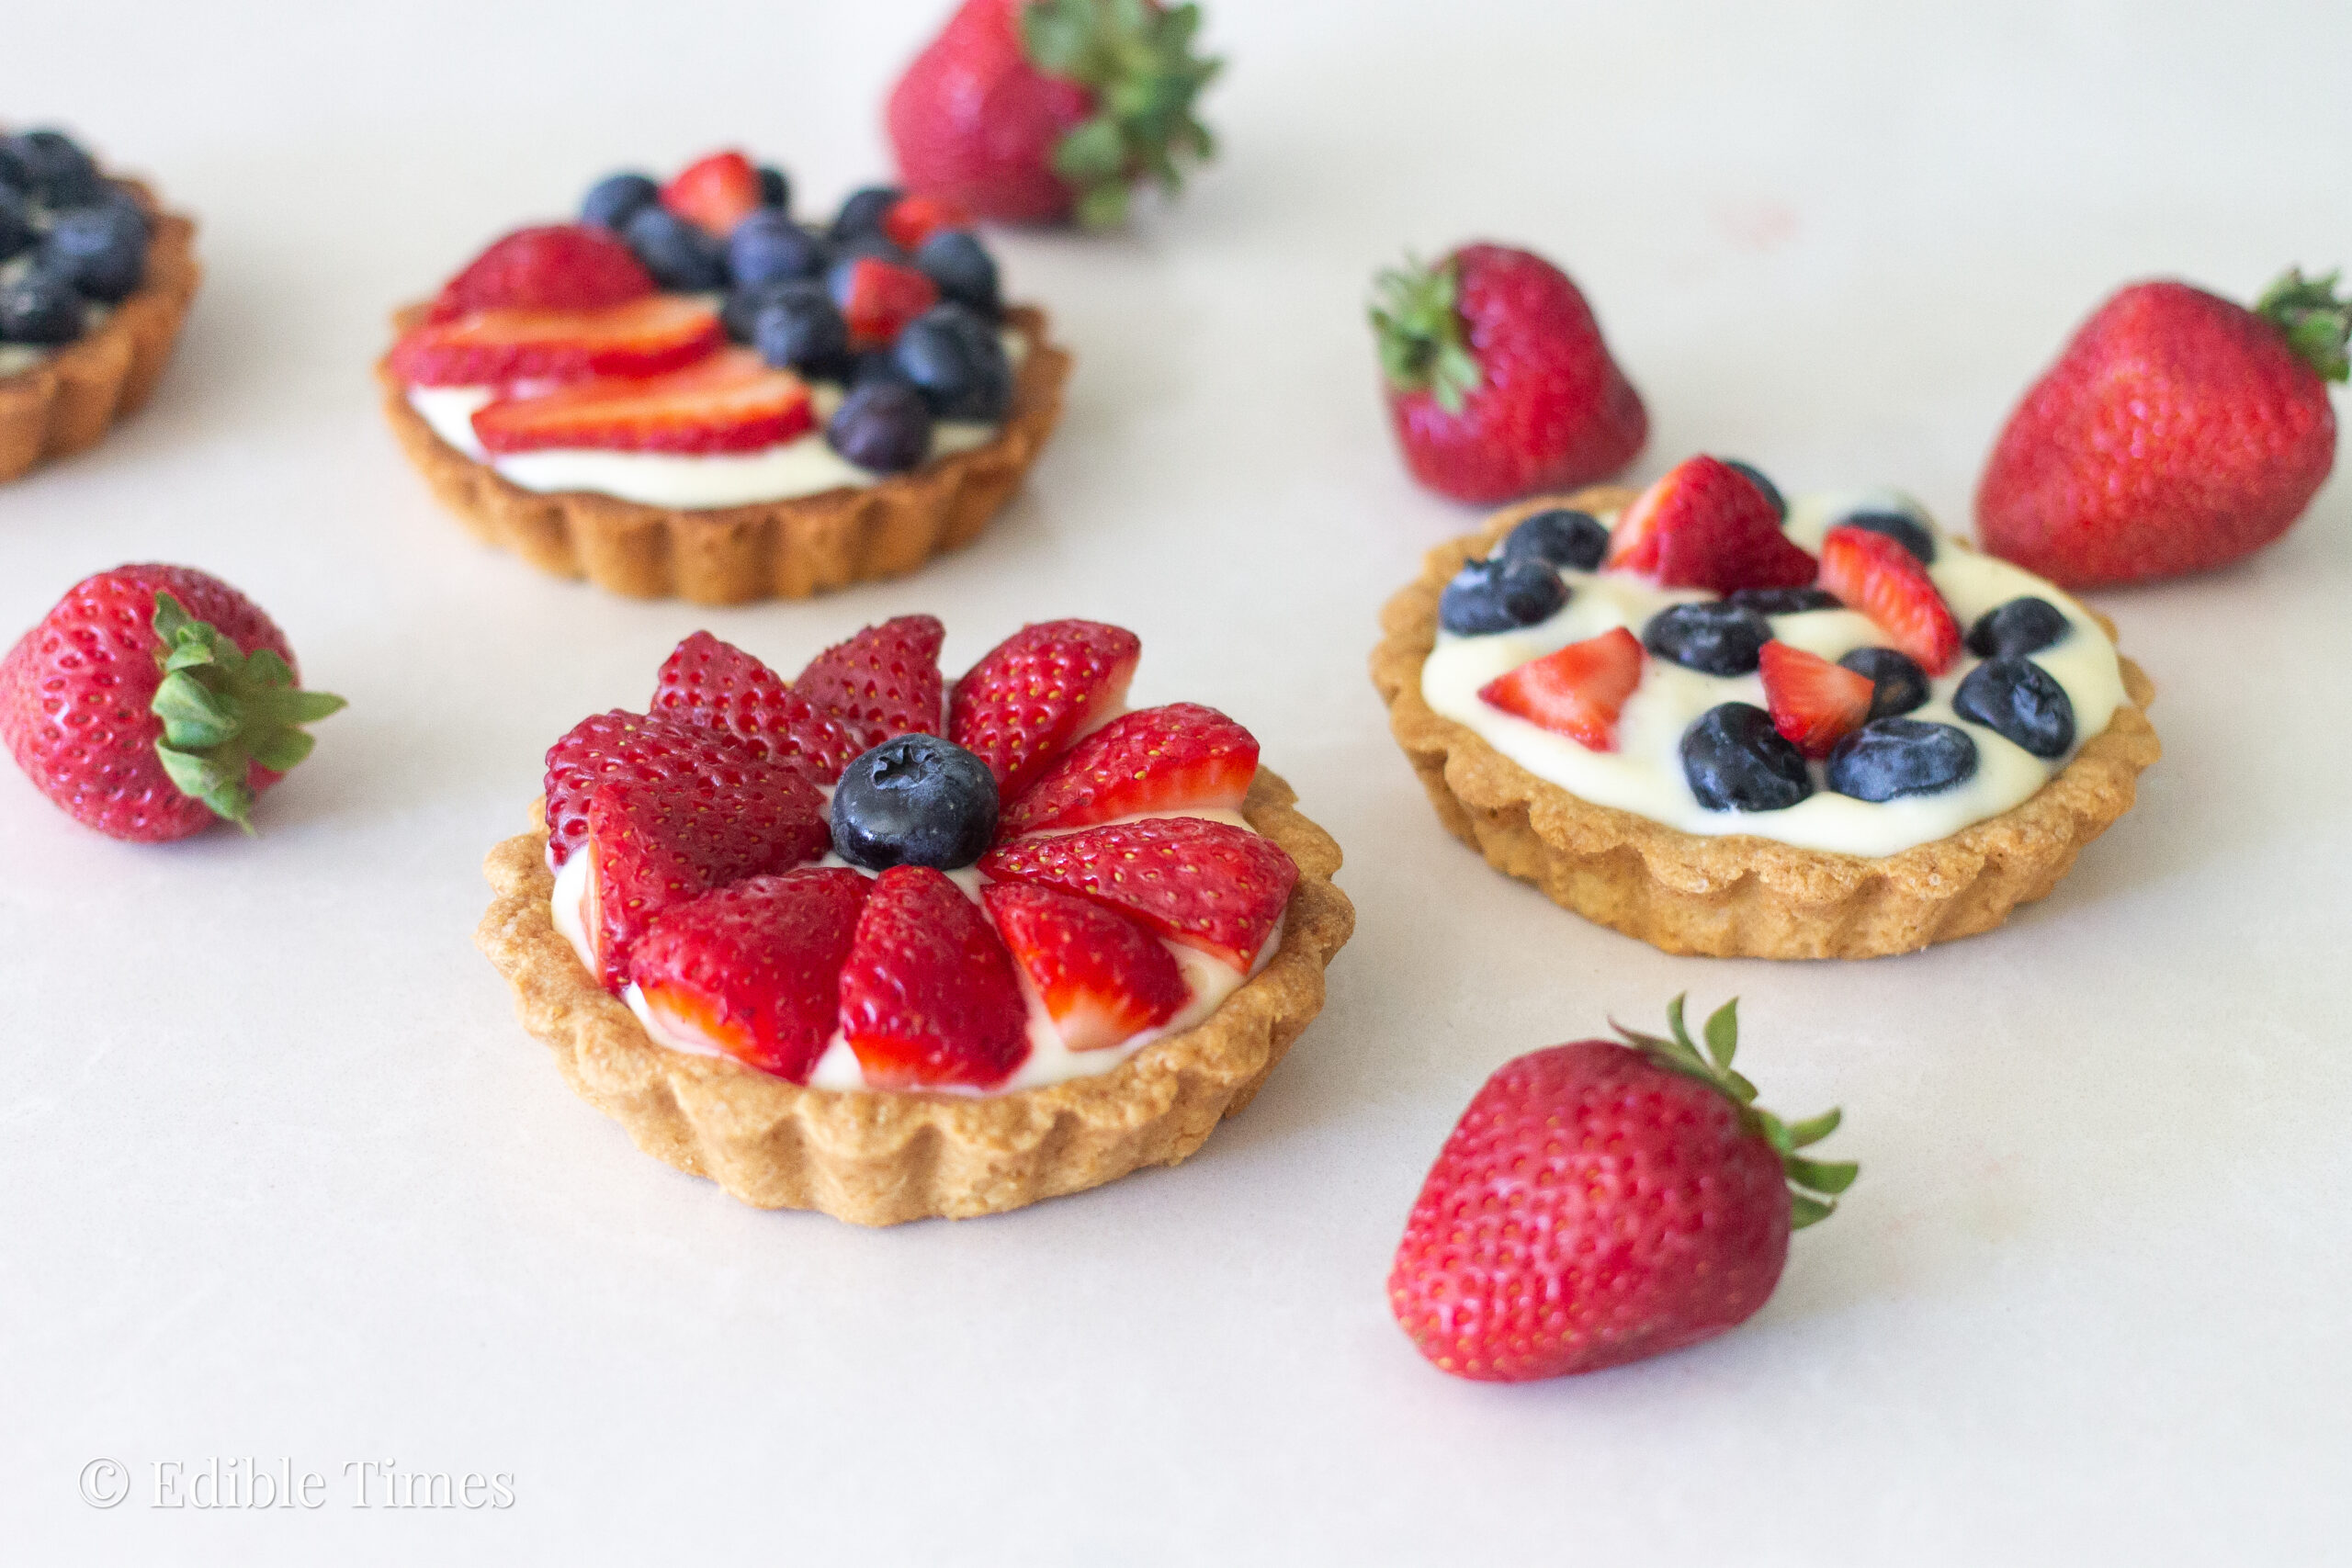 Fruit tart recipe from Edible Times